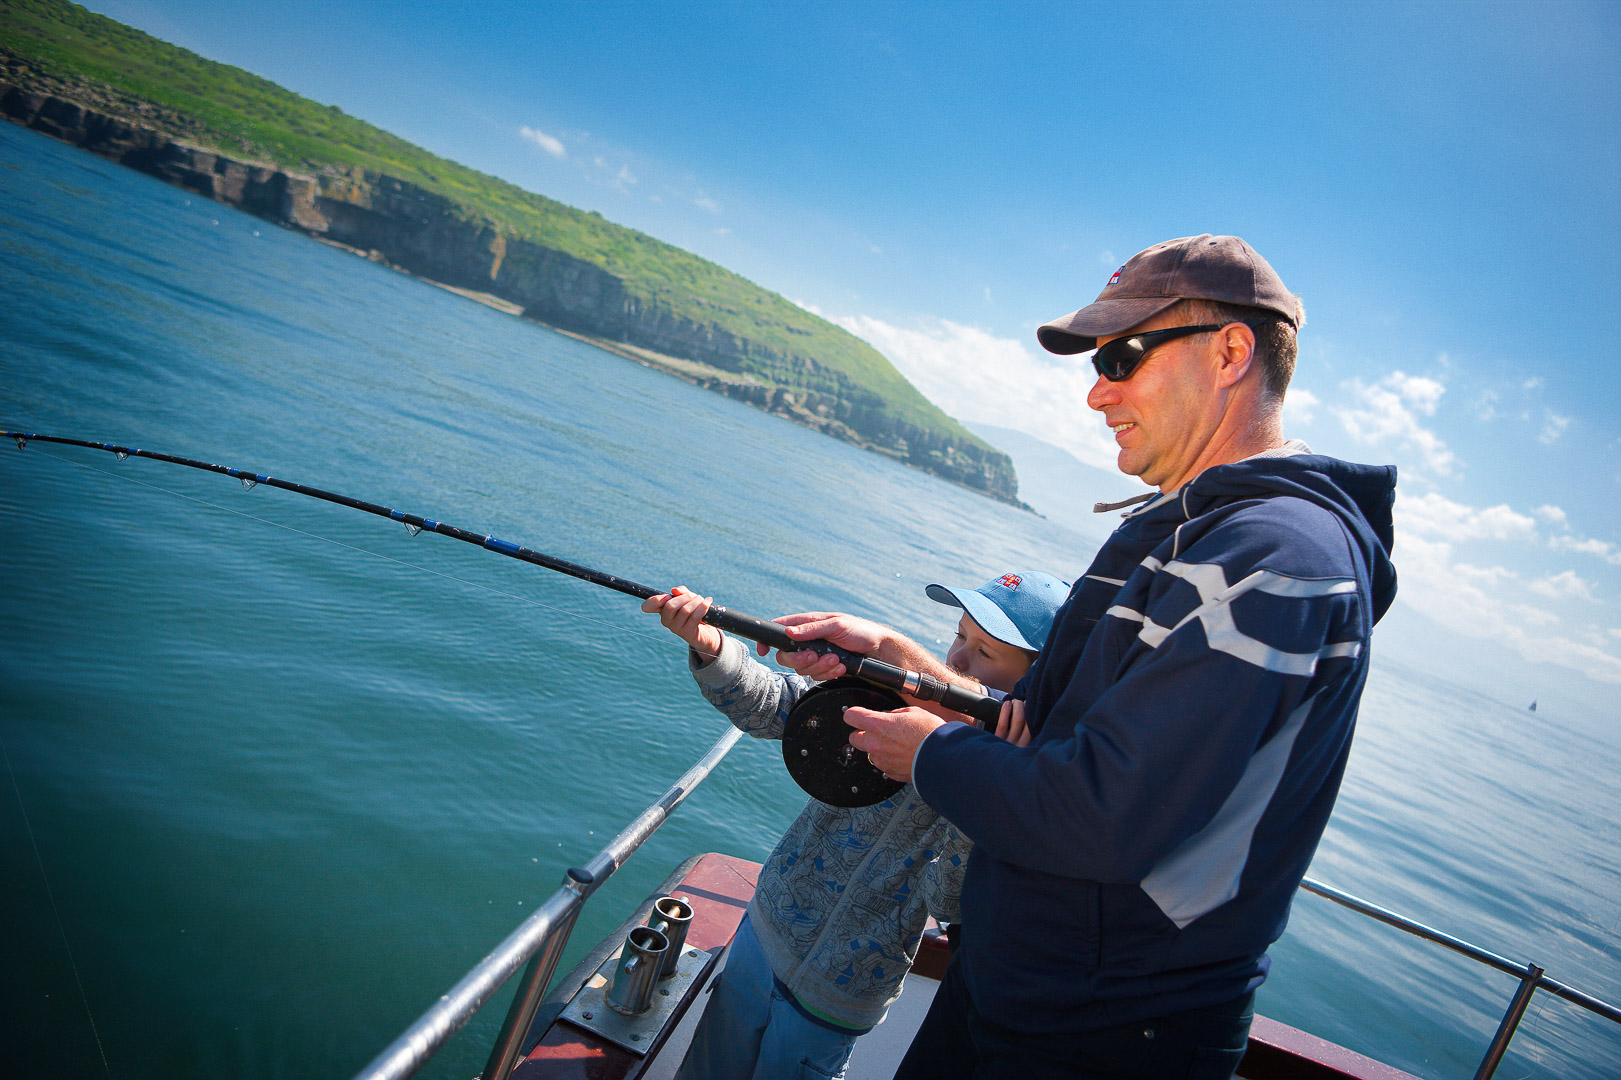 Top 5 boat trips in North Wales